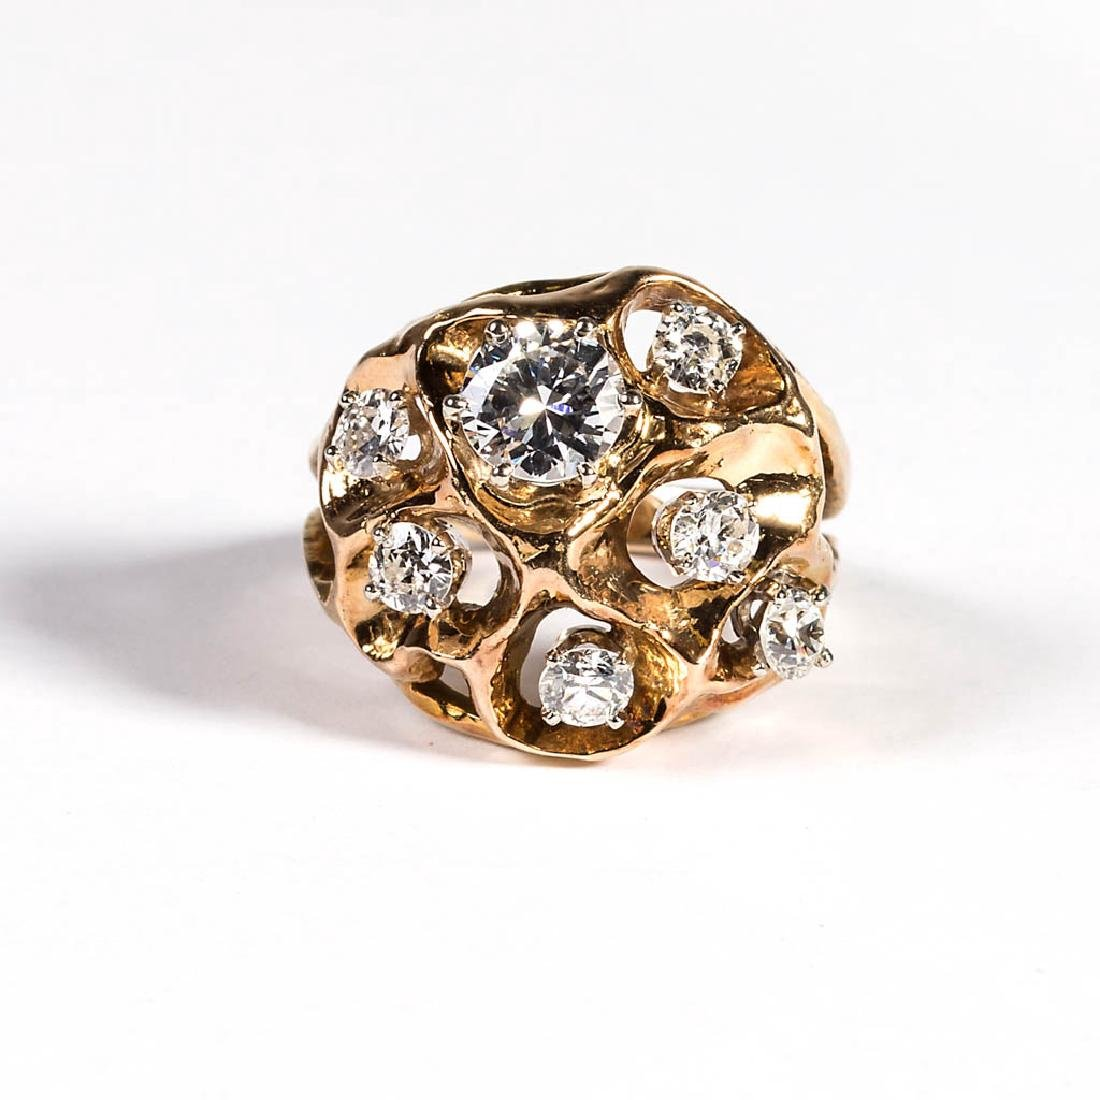 VINTAGE LADY'S 14K GOLD AND DIAMOND FASHION RING